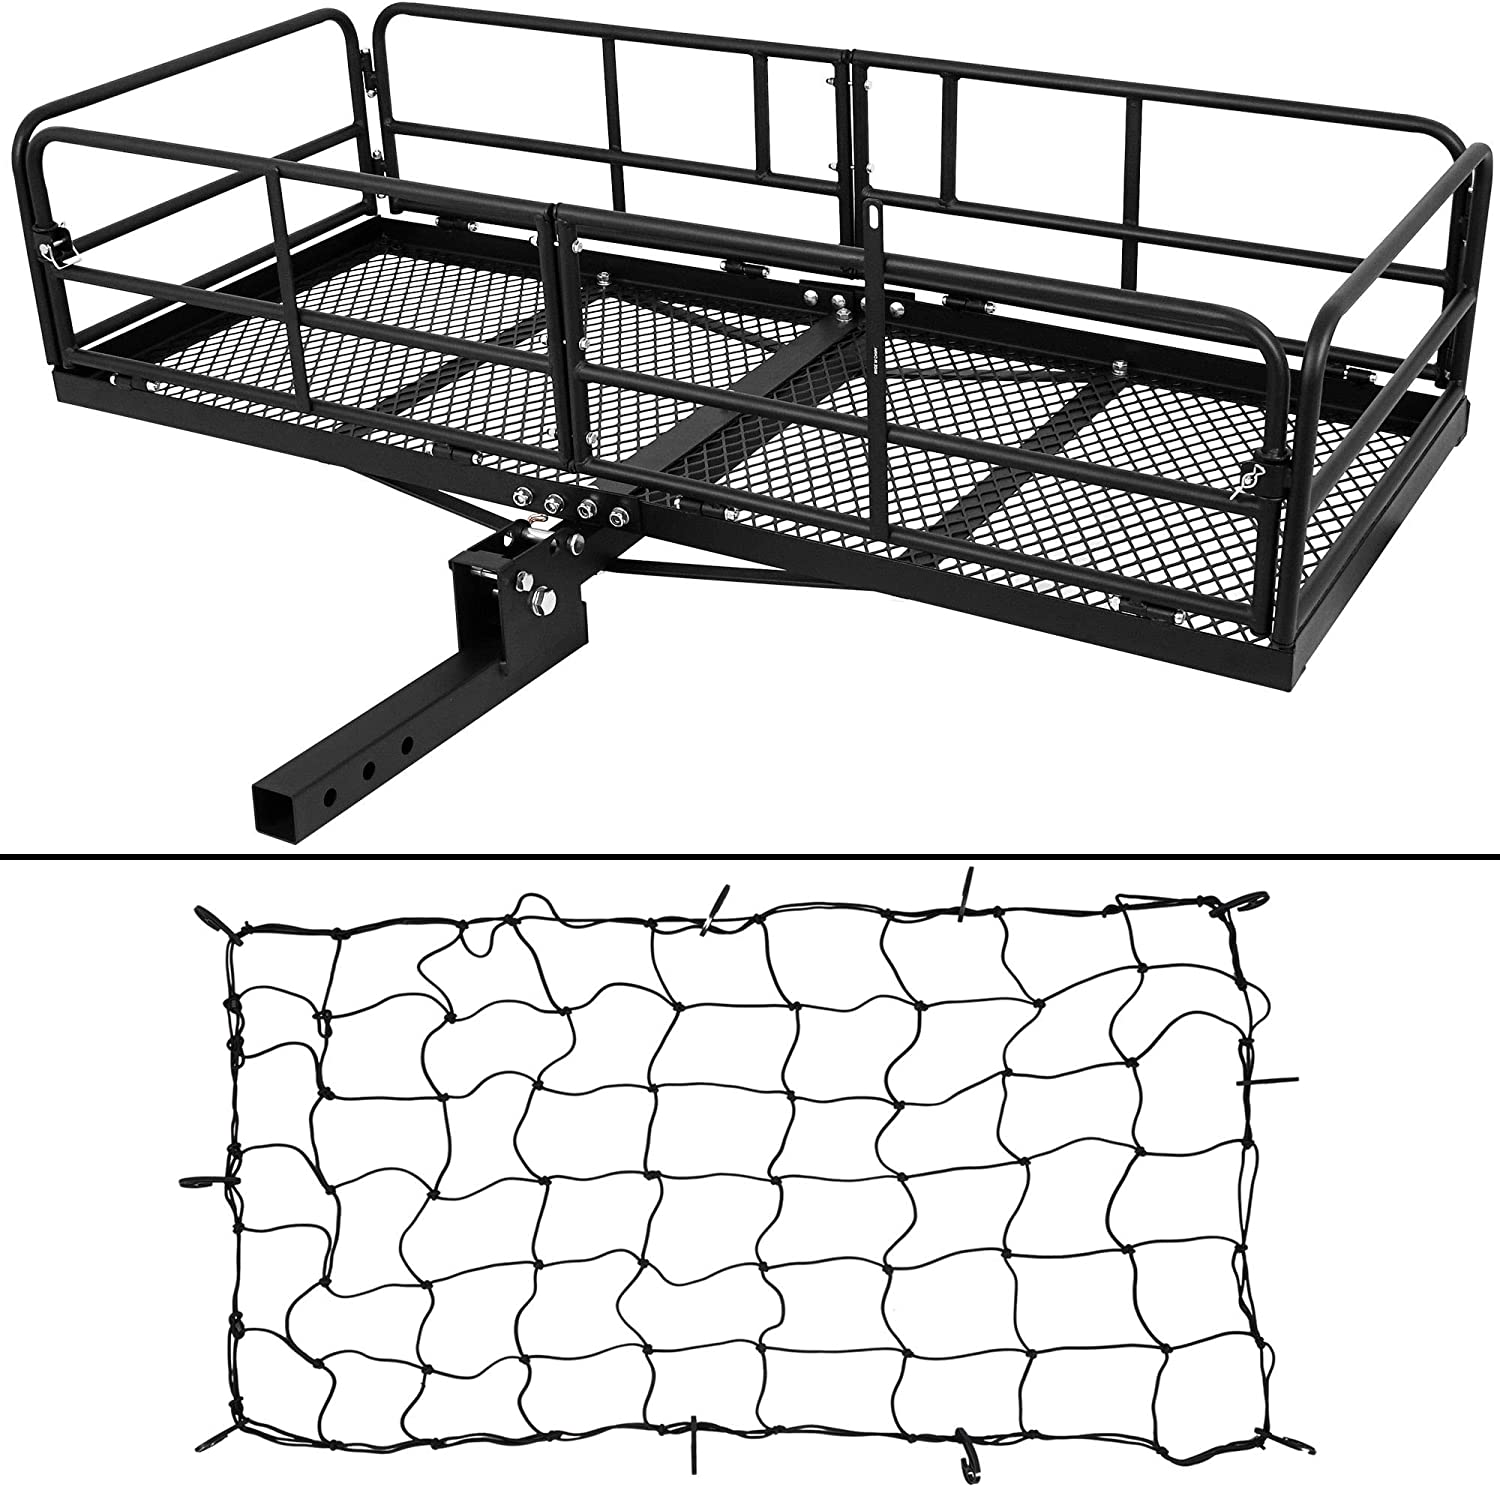 Net Hitch Stabilizer /& 2 Ratchet Straps Combo 500 Lbs Capacity Fit 2 Receiver for SUV Pickup Car ARKSEN 60 x 24 x 14 Hitch Mount Cargo Carrier Folding Cargo Rack with Cargo Bag